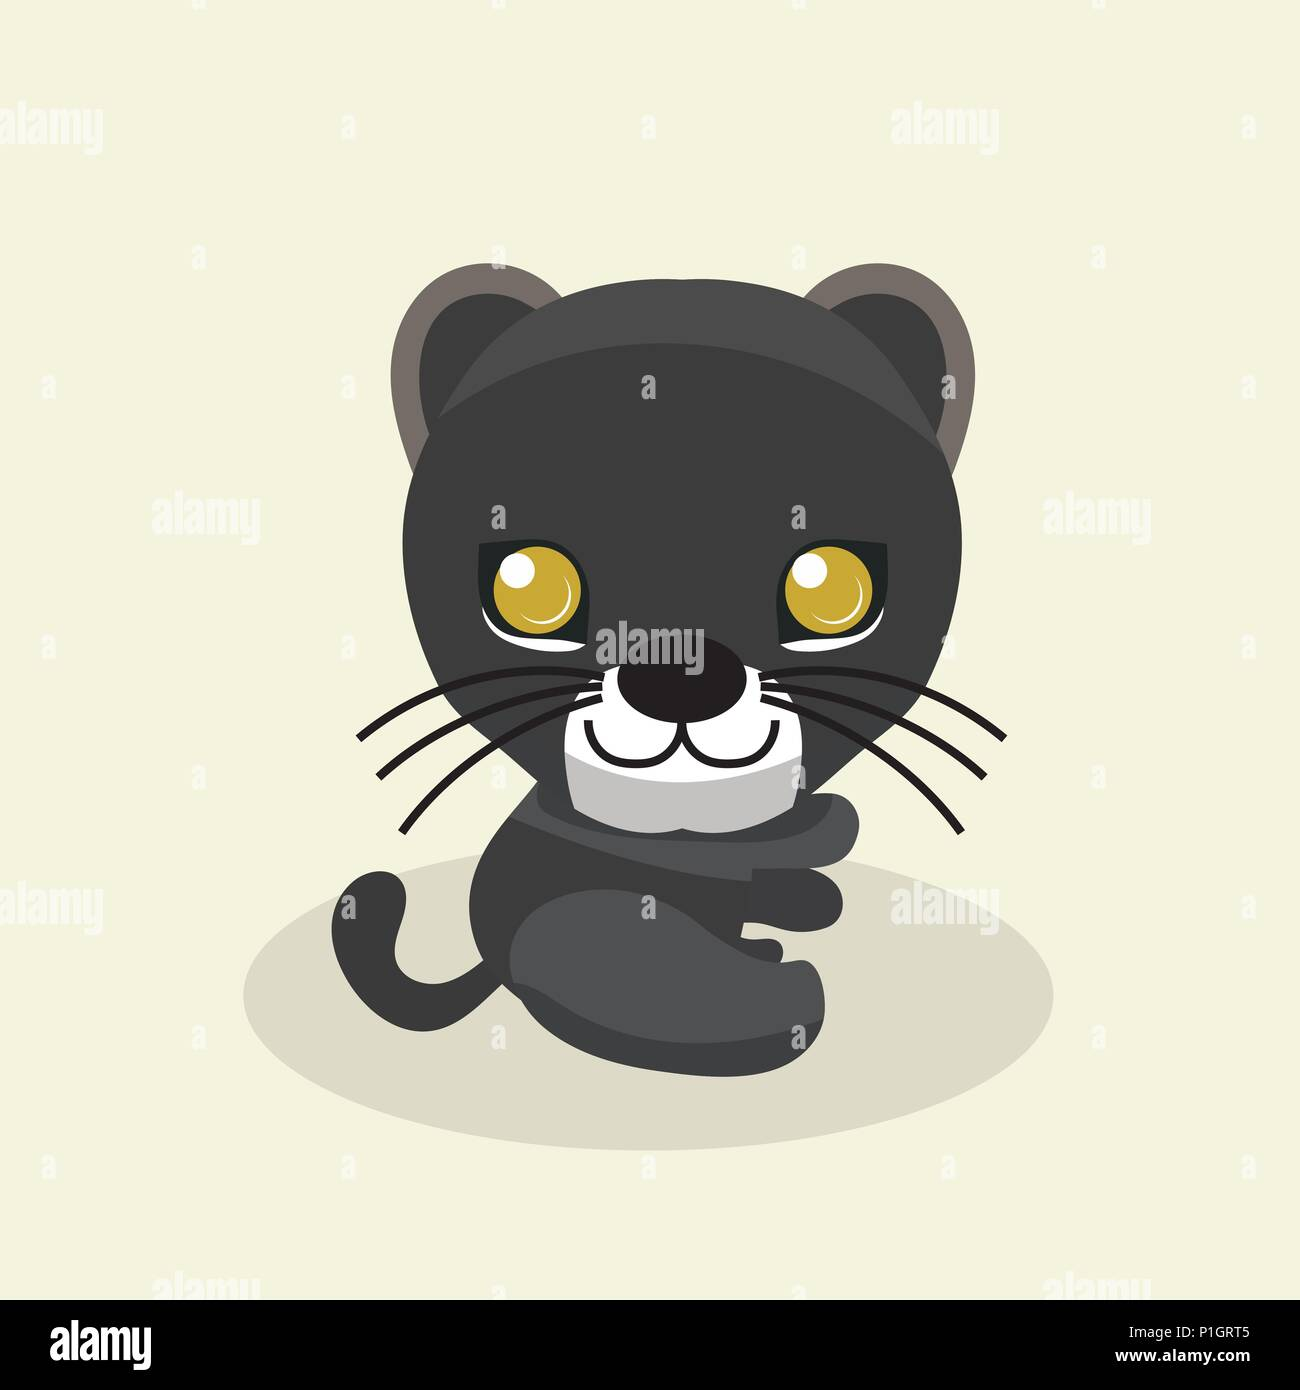 Panther Clip Art Stock Photos Amp Panther Clip Art Stock Images